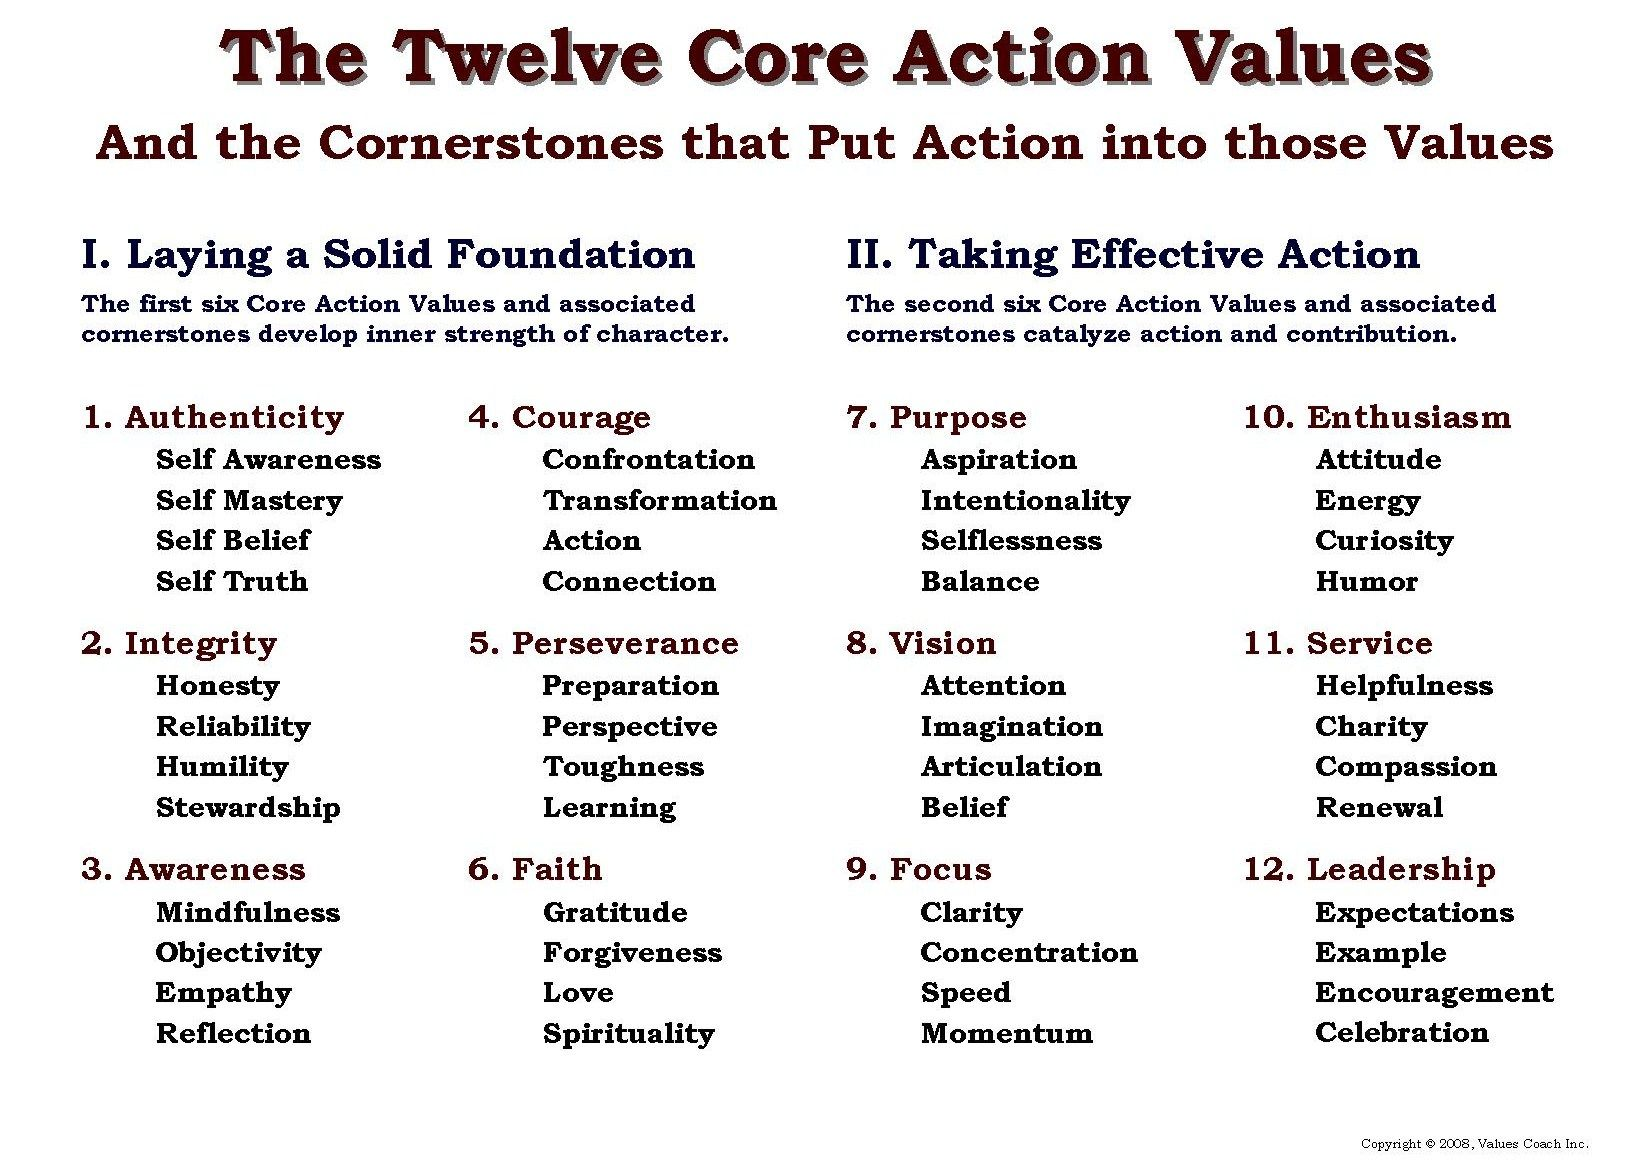 Outline Of The Values Coach Inc Course On The Twelve Core Action Values